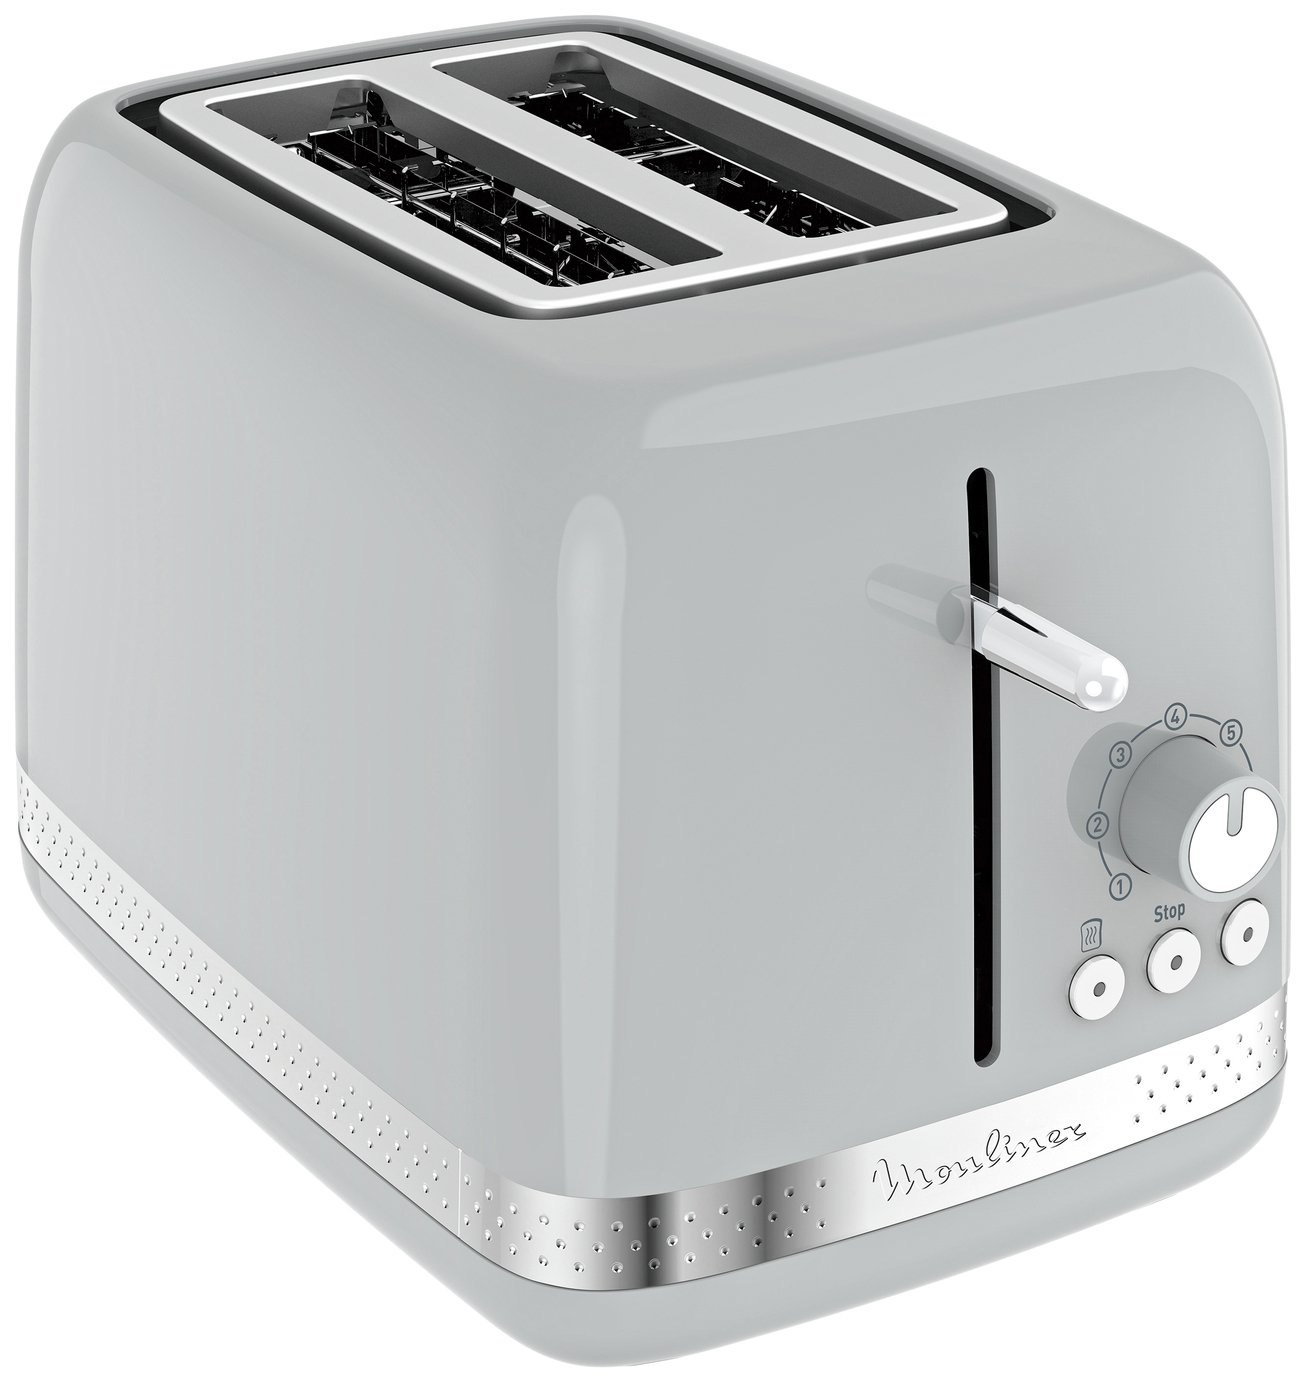 Moulinex LT300E41 2 Slice Toaster - Pepper